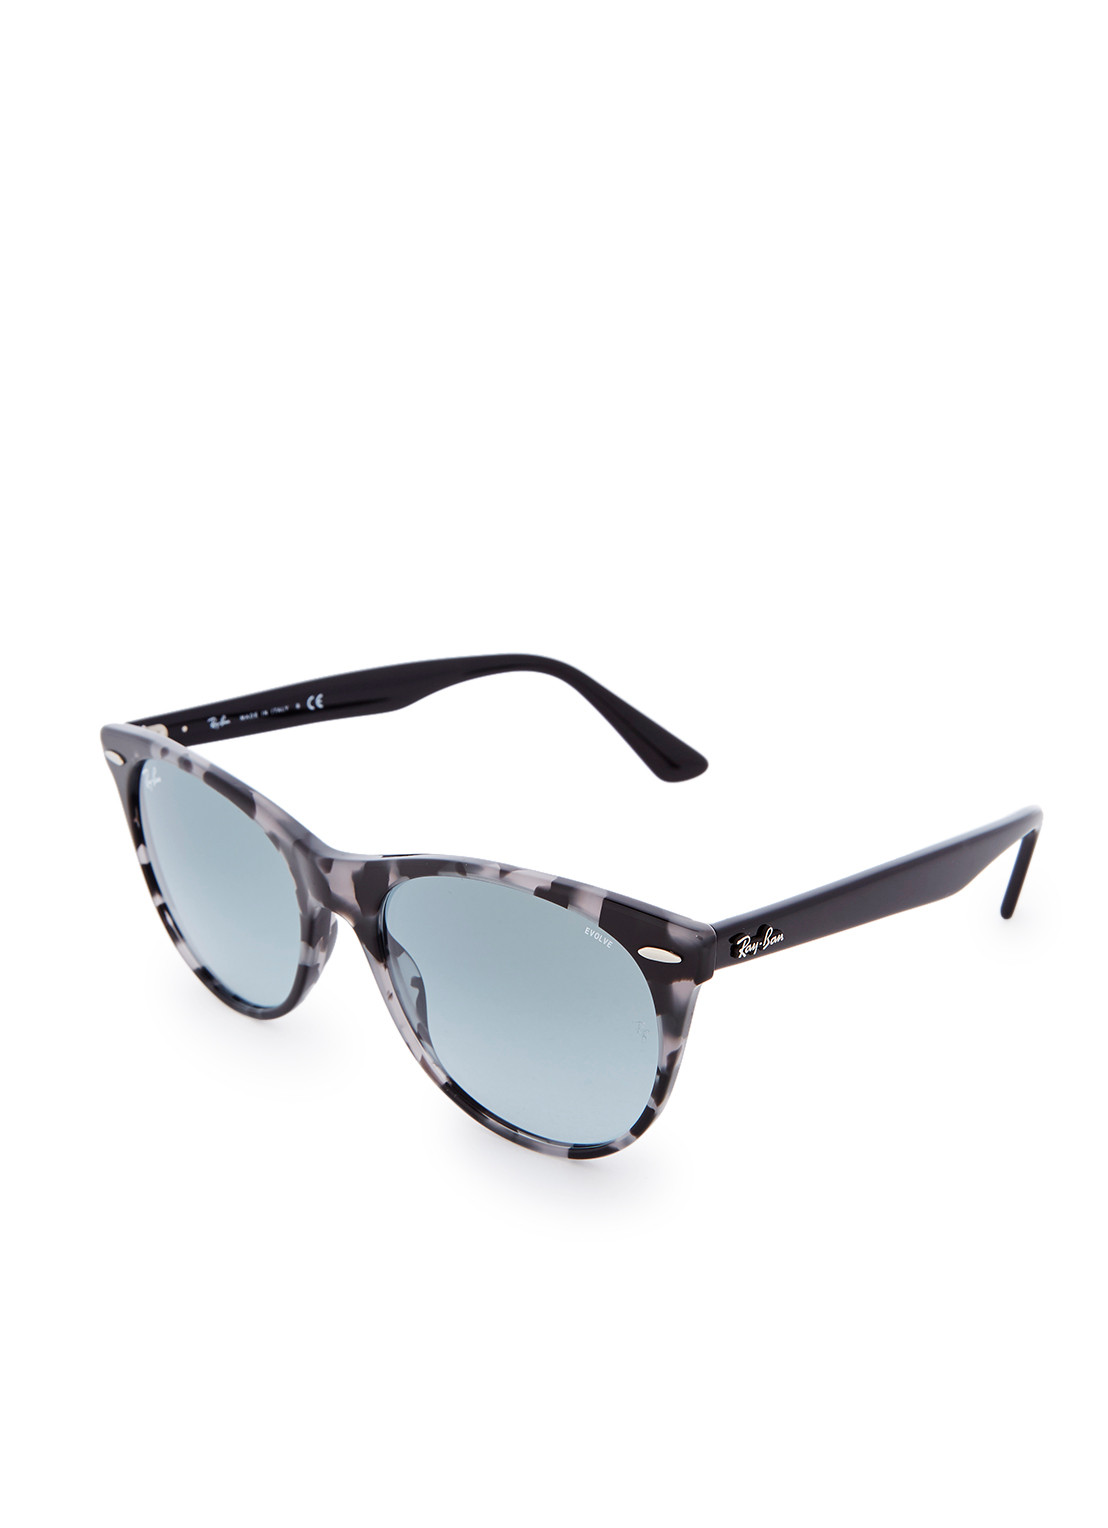 Ray Ban Zonnebril RB2185